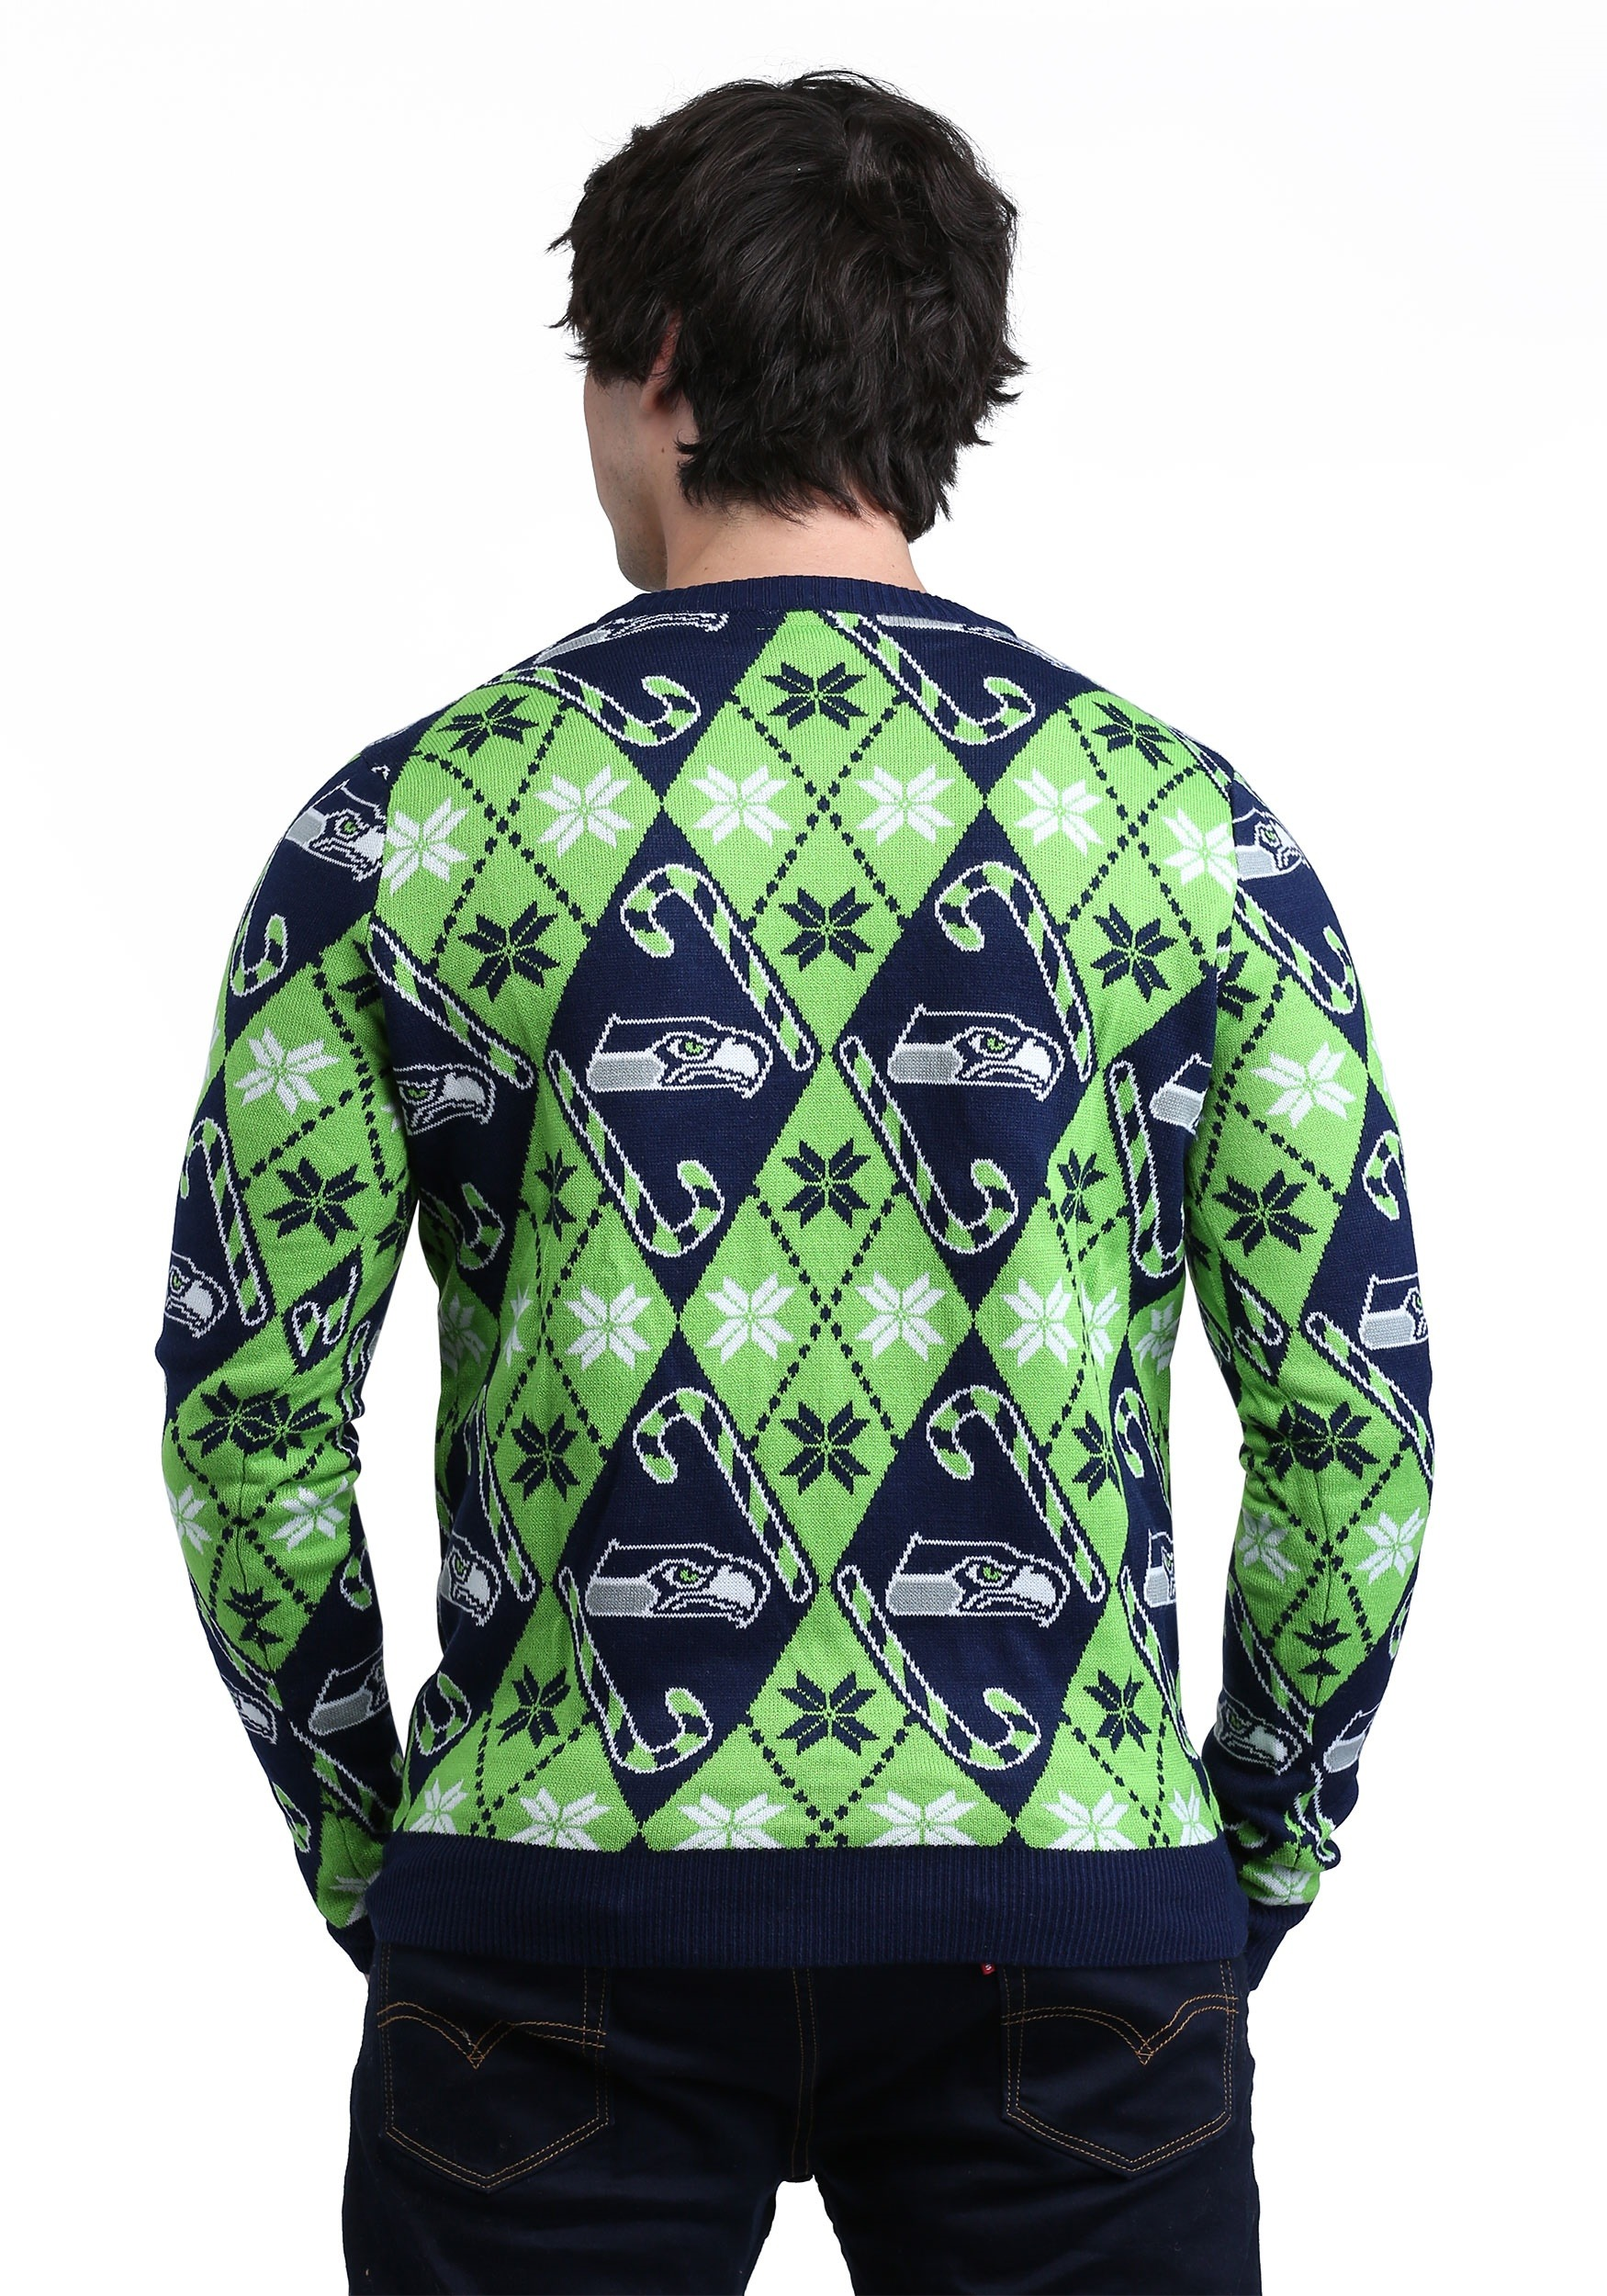 quality design 010ac 8e8bb Seattle Seahawks Candy Cane Ugly Christmas Sweater